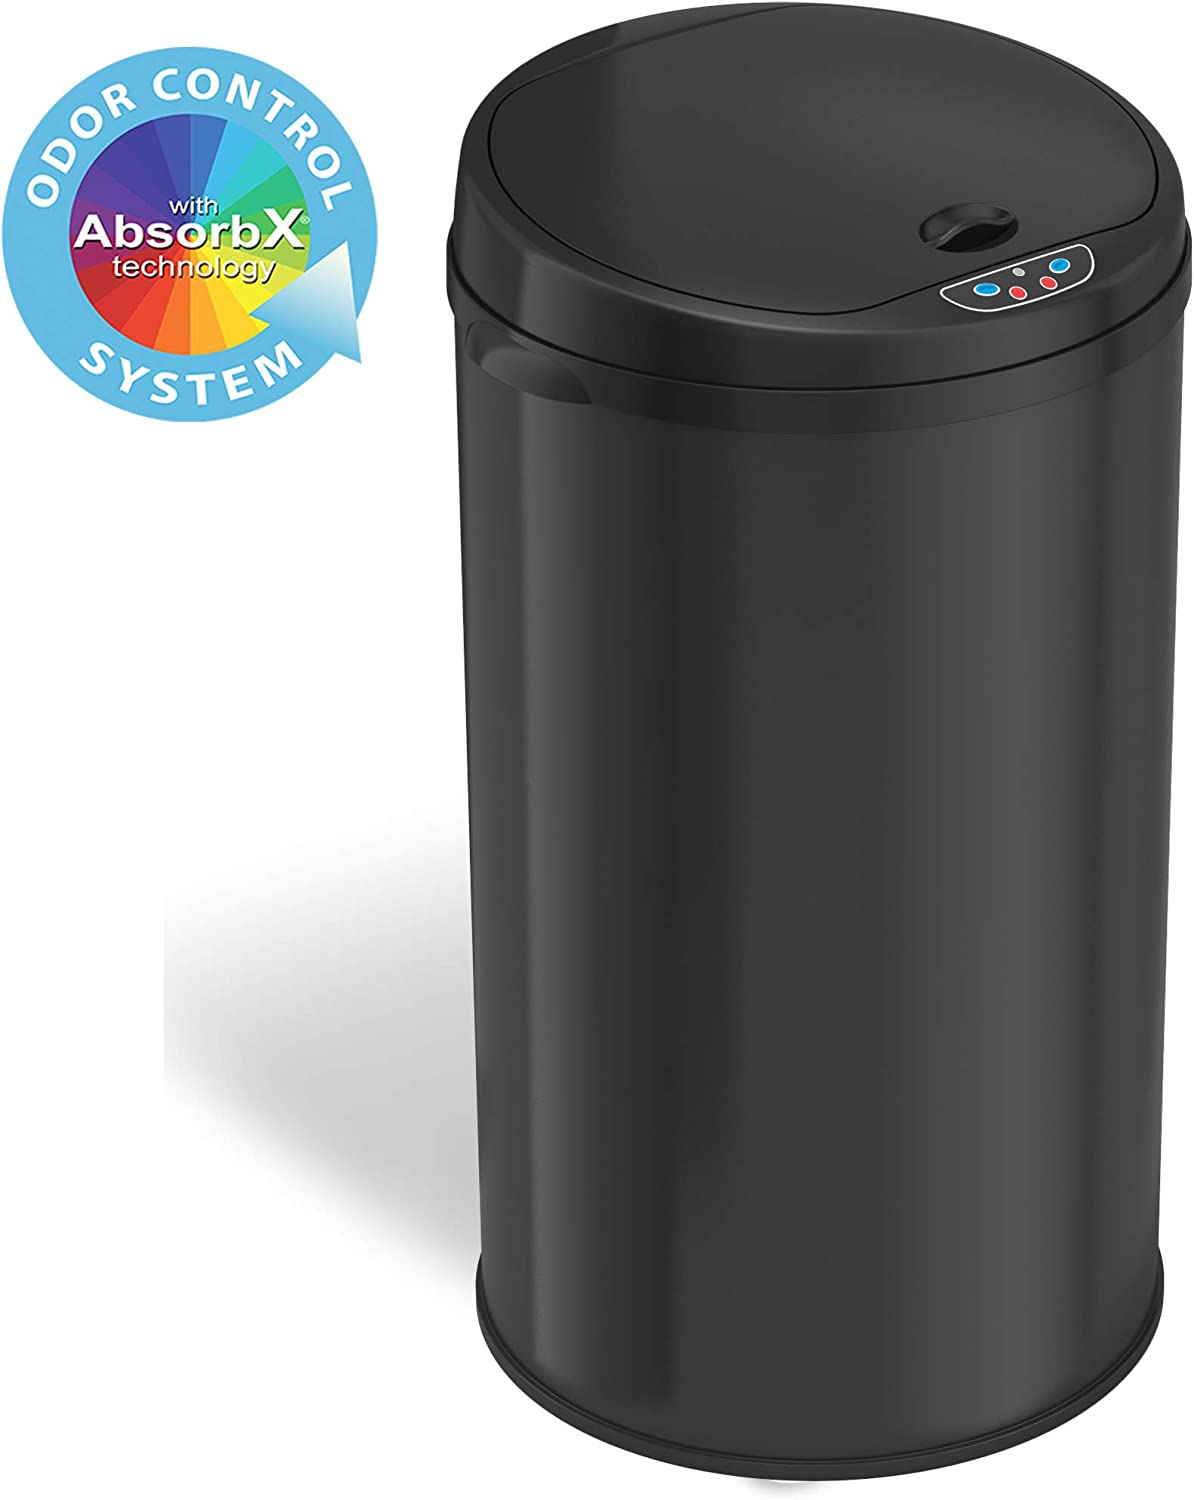 iTouchless Garbage Bin, Perfect for Home, Kitchen, Office 8 Gallon Touchless Sensor Trash Can with AbsorbX Odor Filter System, Round-Steel Black